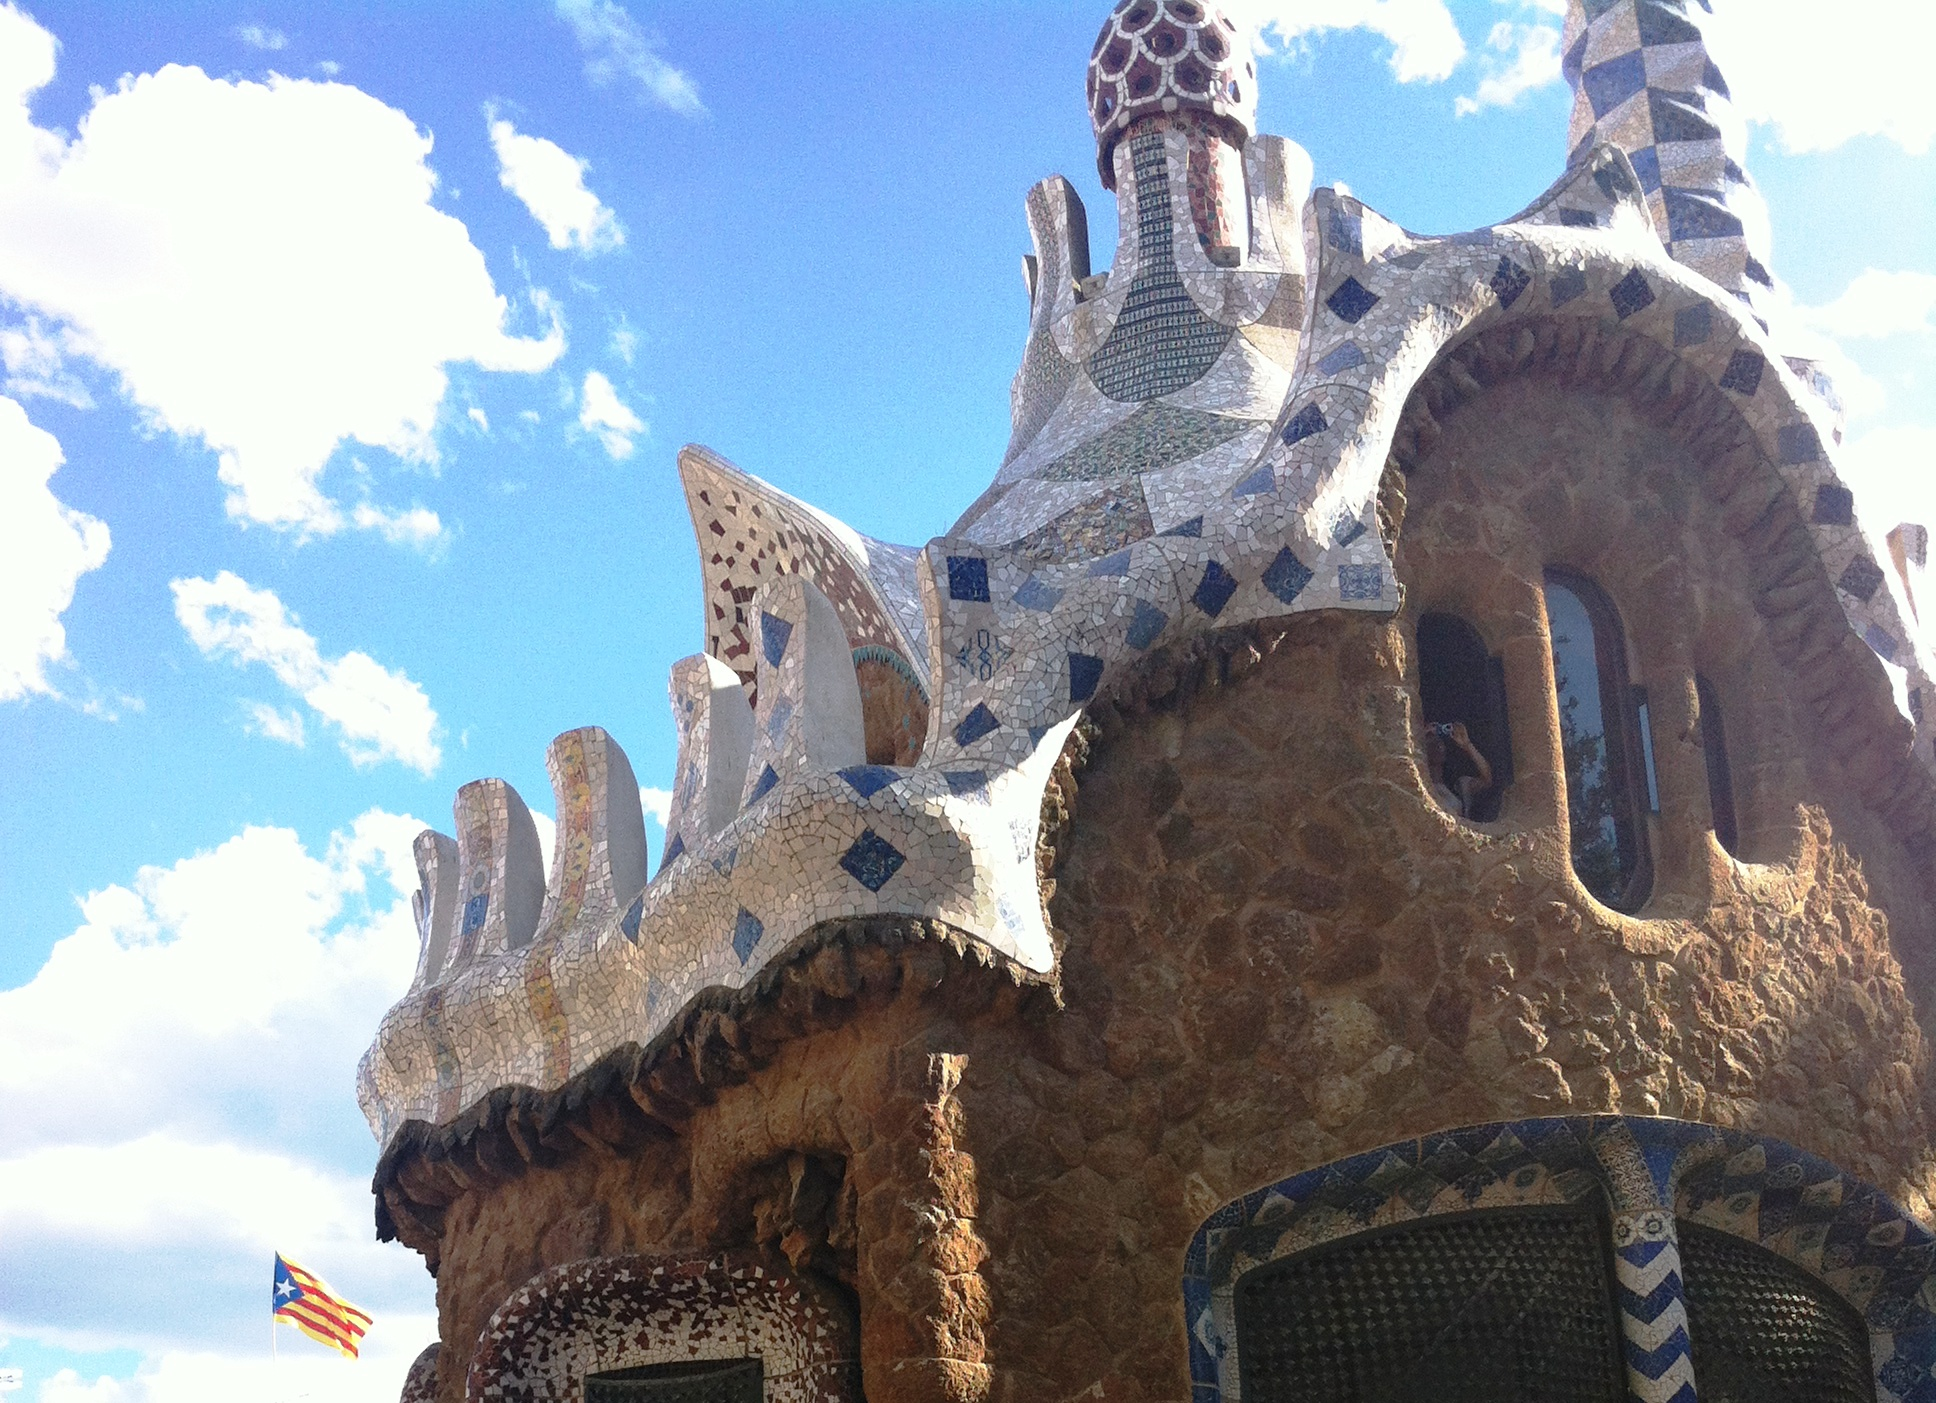 4 h walking tour – Barcelona Gaudí Tour